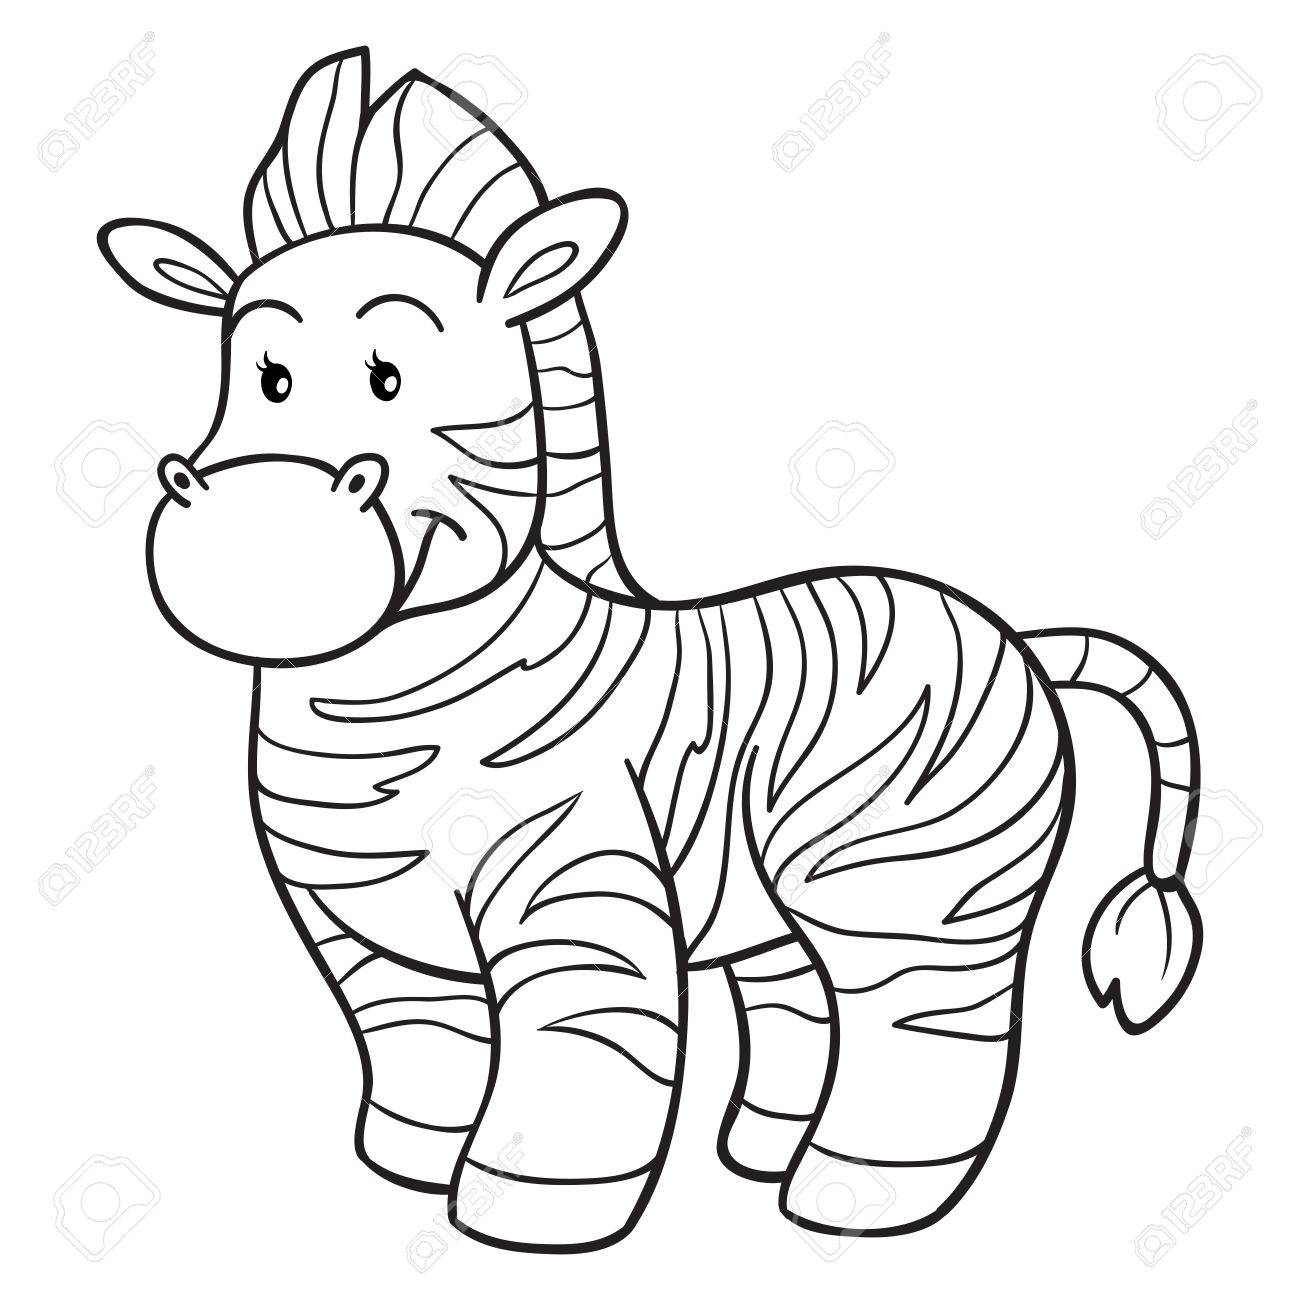 Coloring Book (zebra) Royalty Free Cliparts, Vectors, And Stock ...